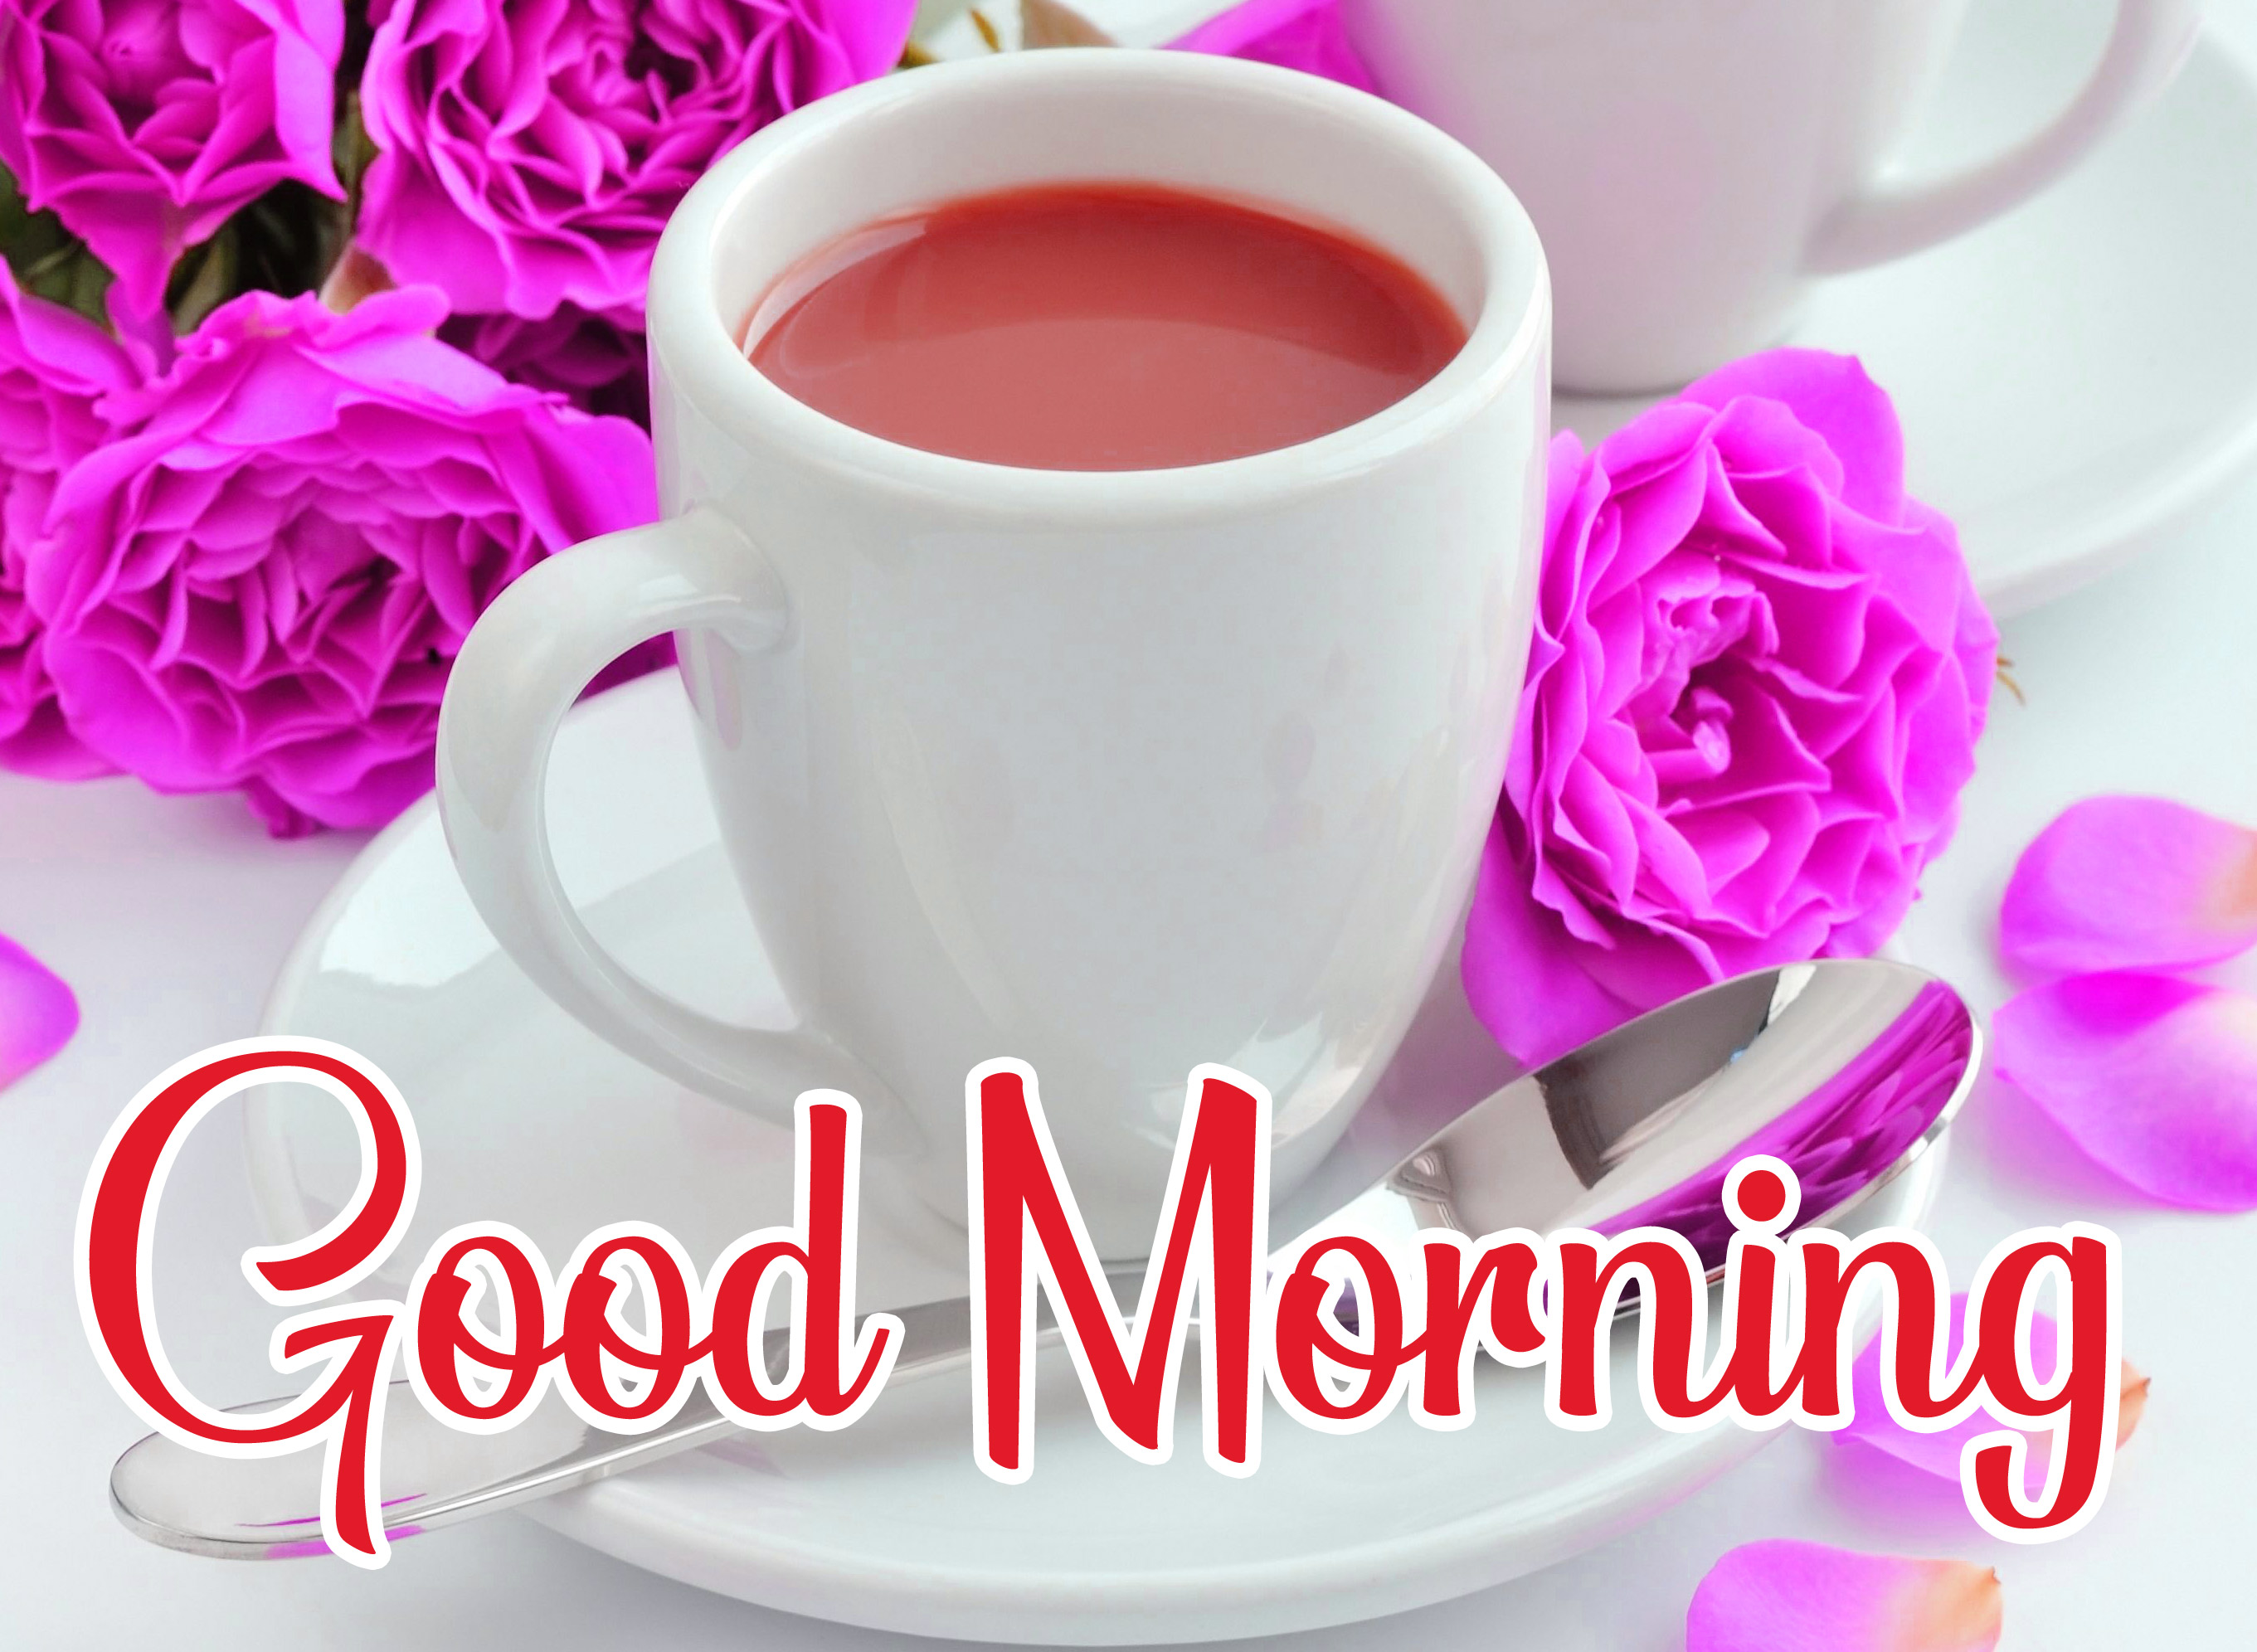 Good Morning Tea Cup Images With Red Rose